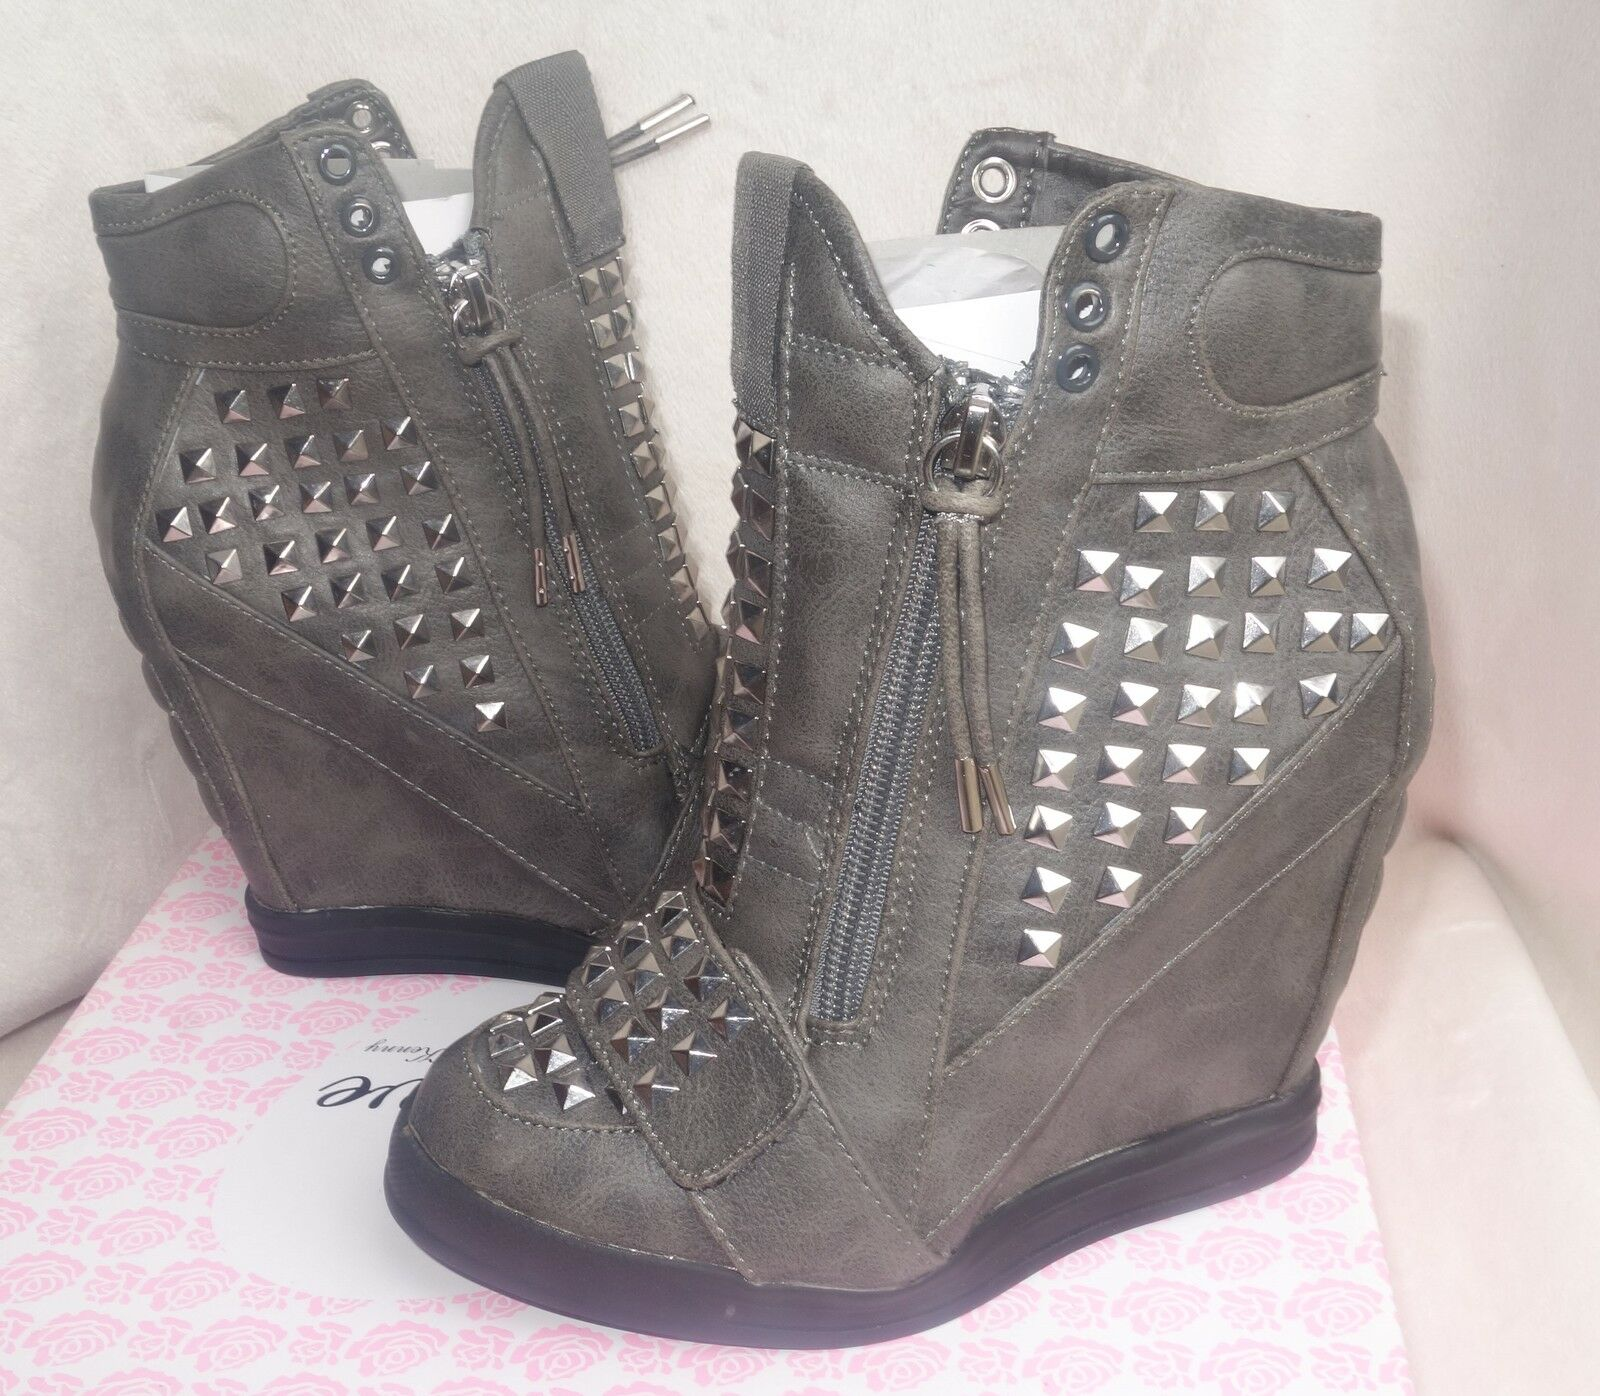 First Love by Penny Loves Kenny Gray High top Wedge Sneakers wink sz 6 new